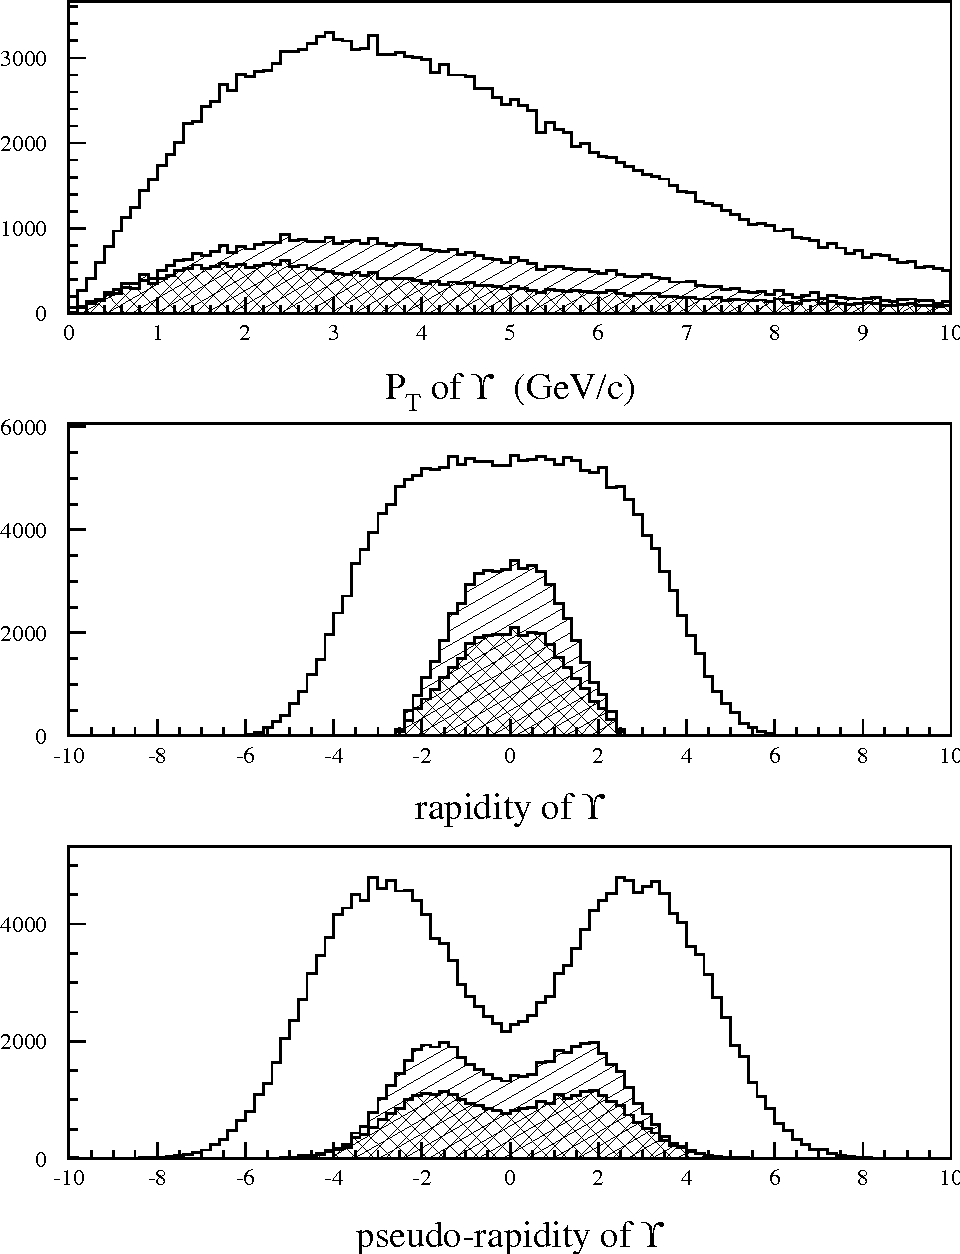 Figure 4: Υ(1S): distributions of PT (top), y (middle) and η (bottom). The solid lines correspond to the generated events, the hatched areas stand for accepted ones and the cross hatched areas correspond to PµT > 3.5 GeV/c for each muon.